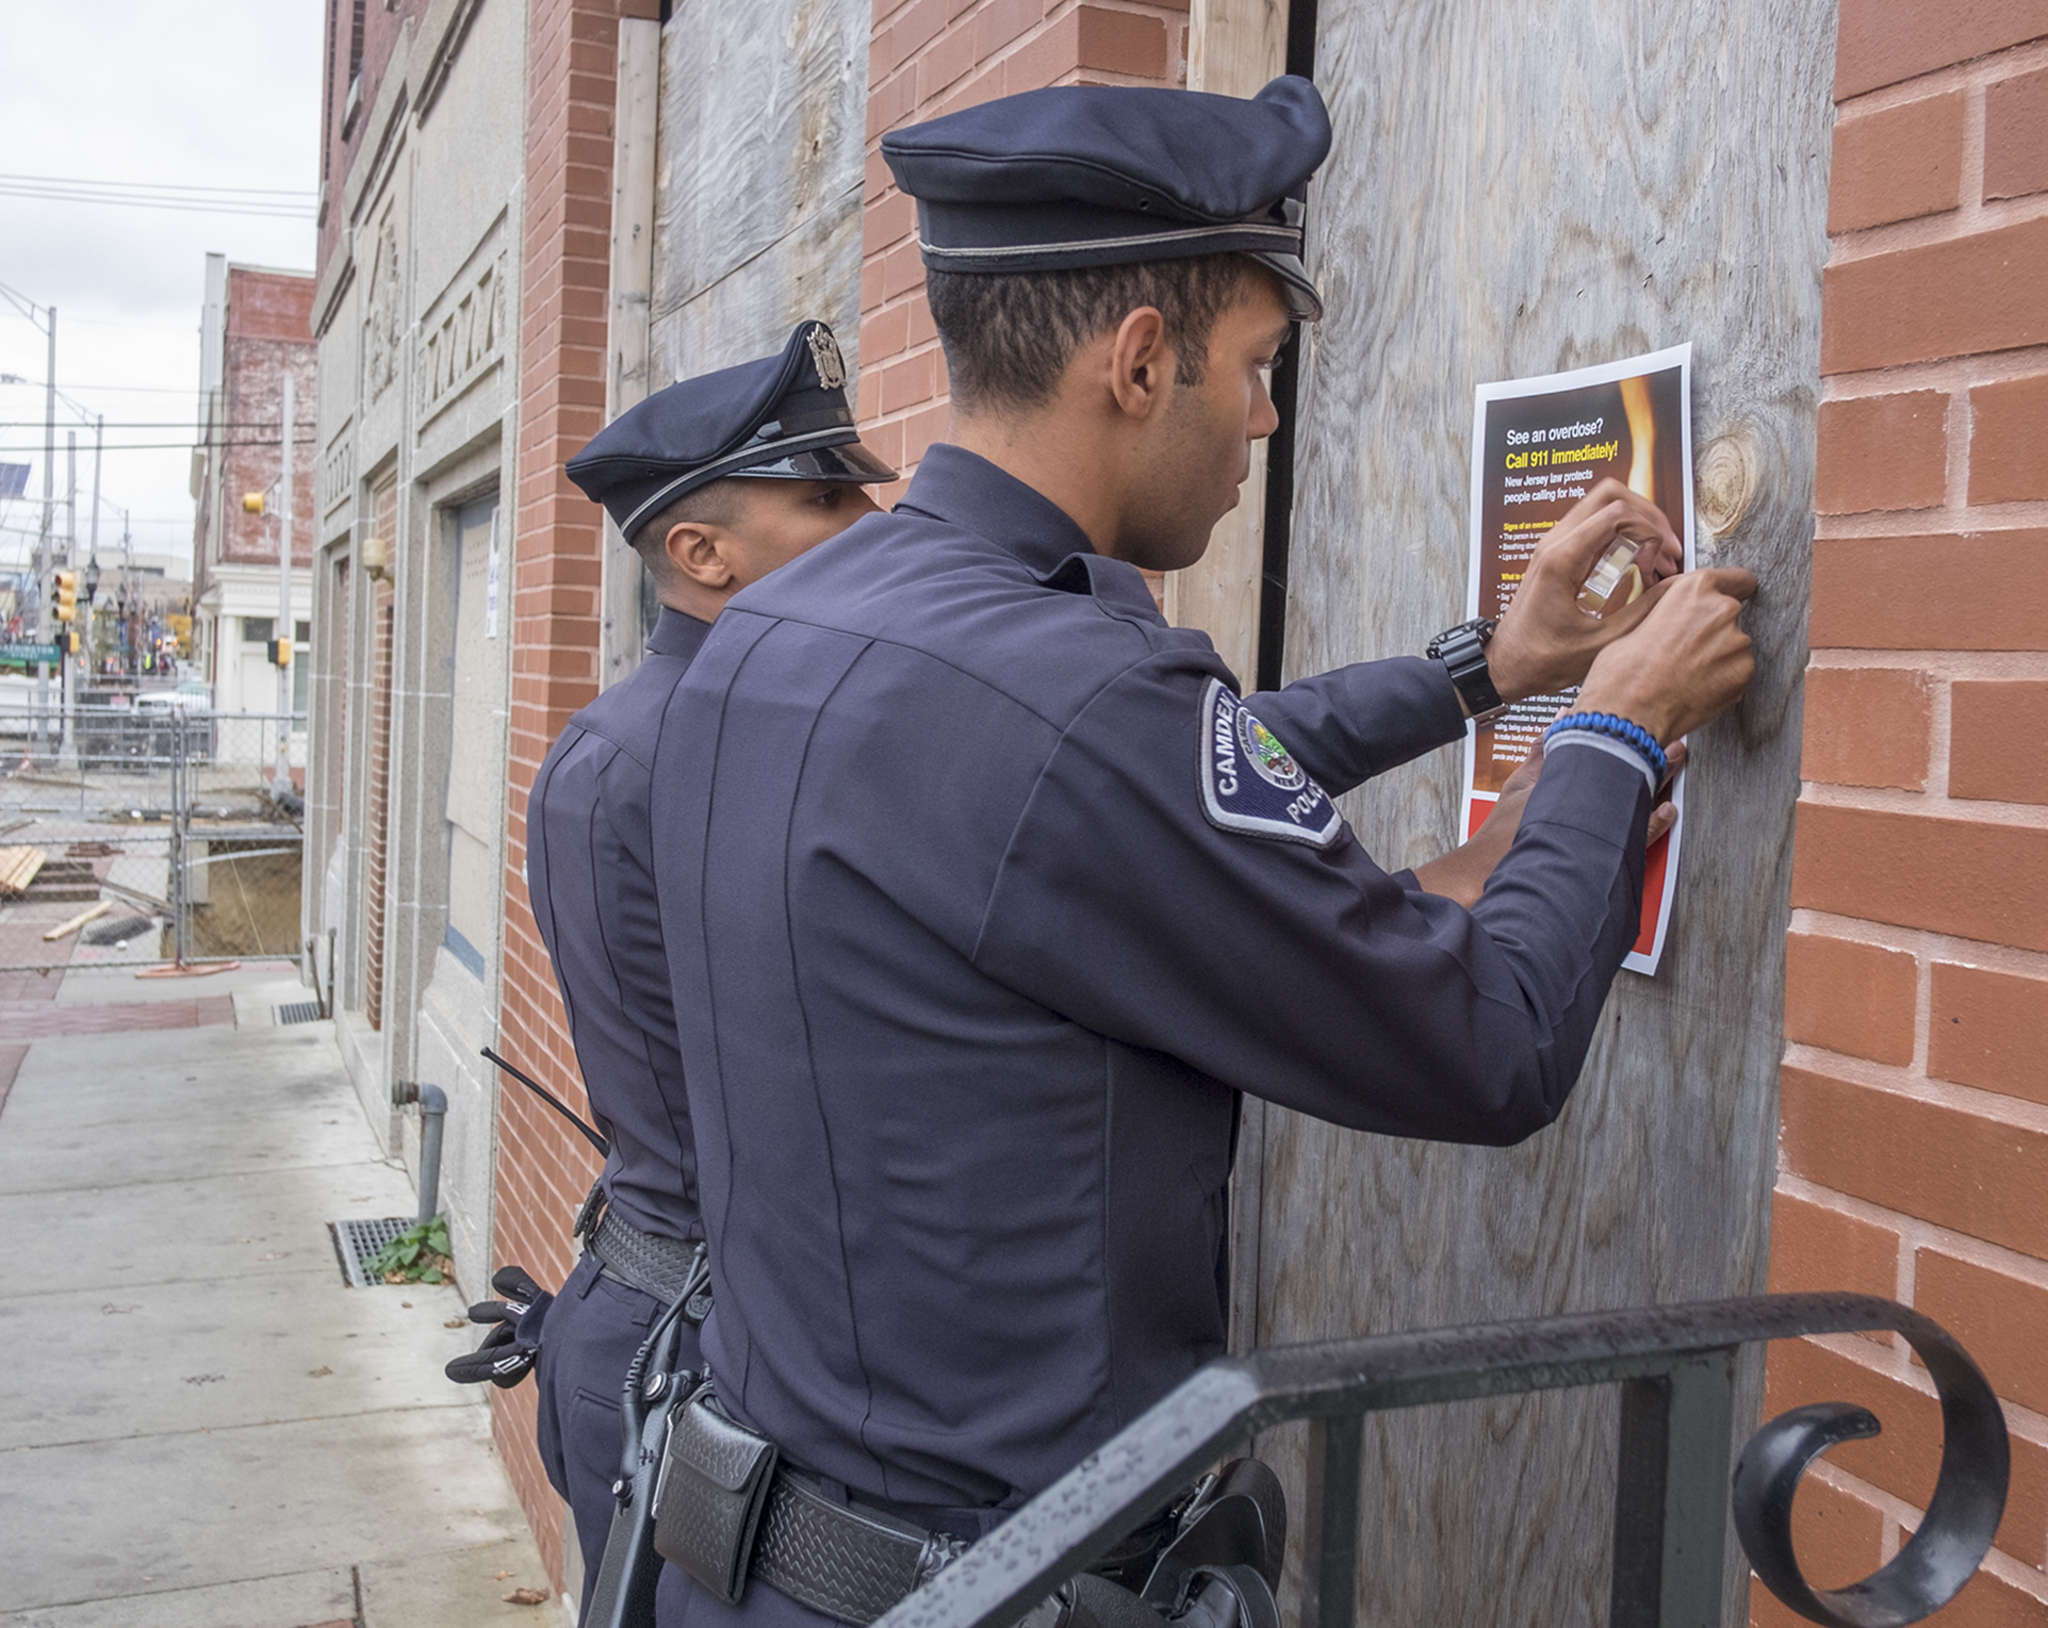 Camden County Officers Vidal Rivera (left) and Tyrell Bagby post information on a boarded-up building on Broadway. They were part of the outreach effort. ED HILLE / Staff Photographer